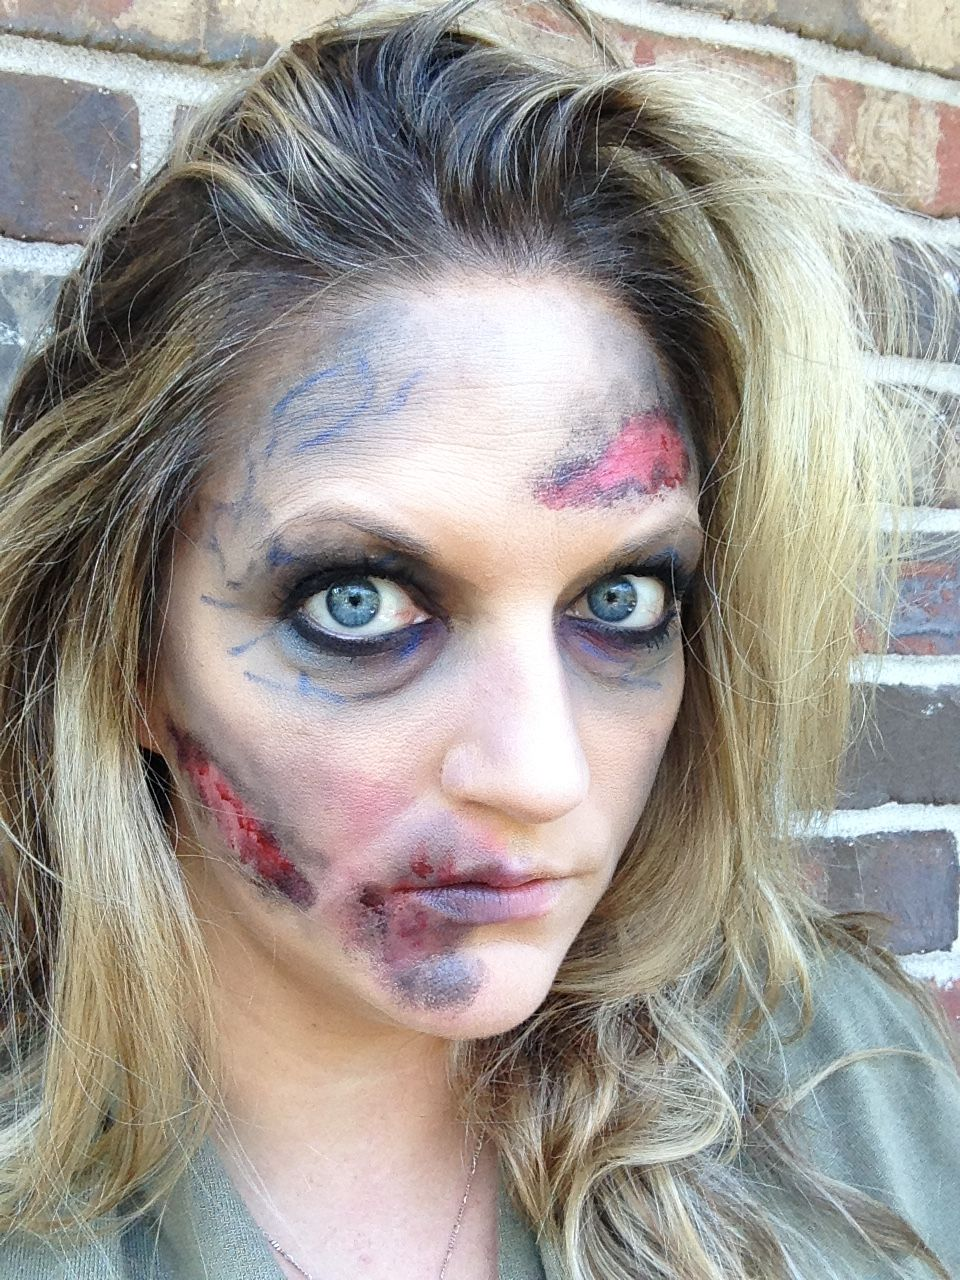 halloween zombie makeup easy diy with makeup that you likely already